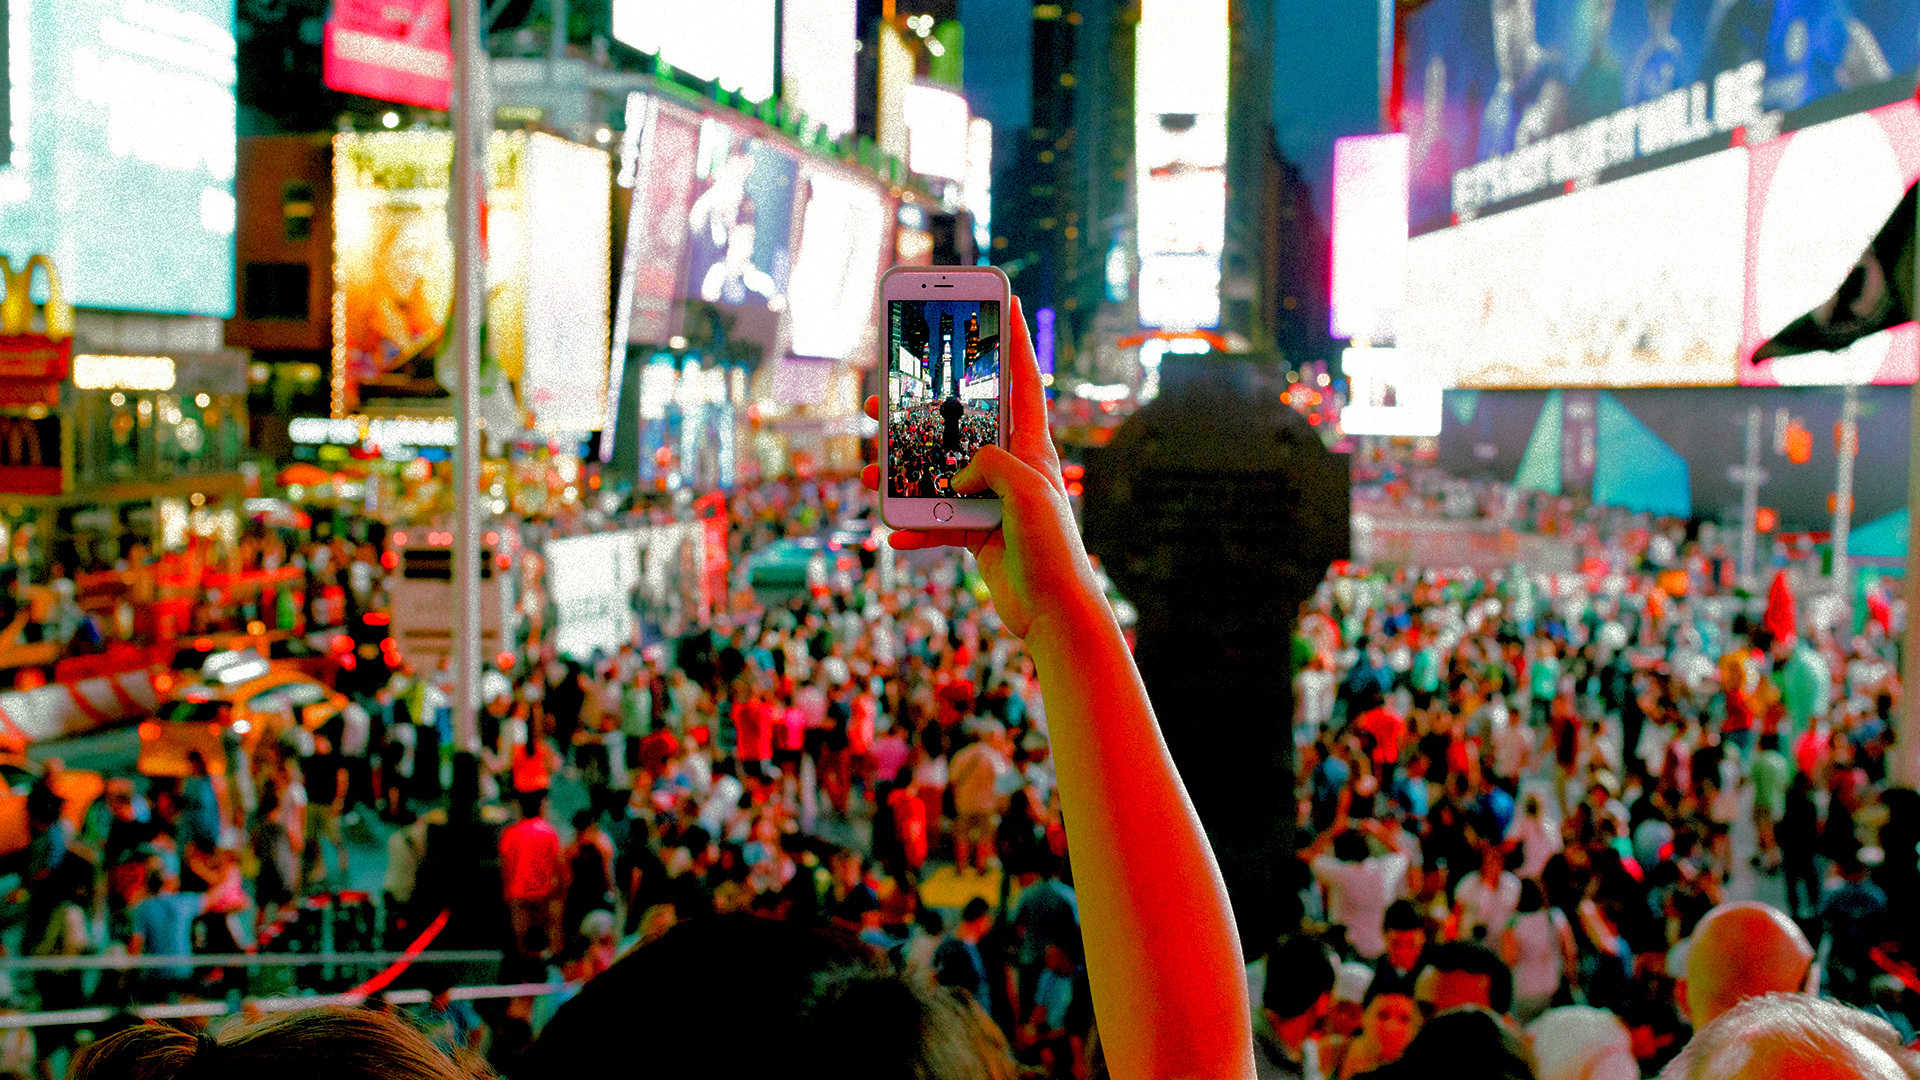 A smartphone filming a crowd in Times Square in New York